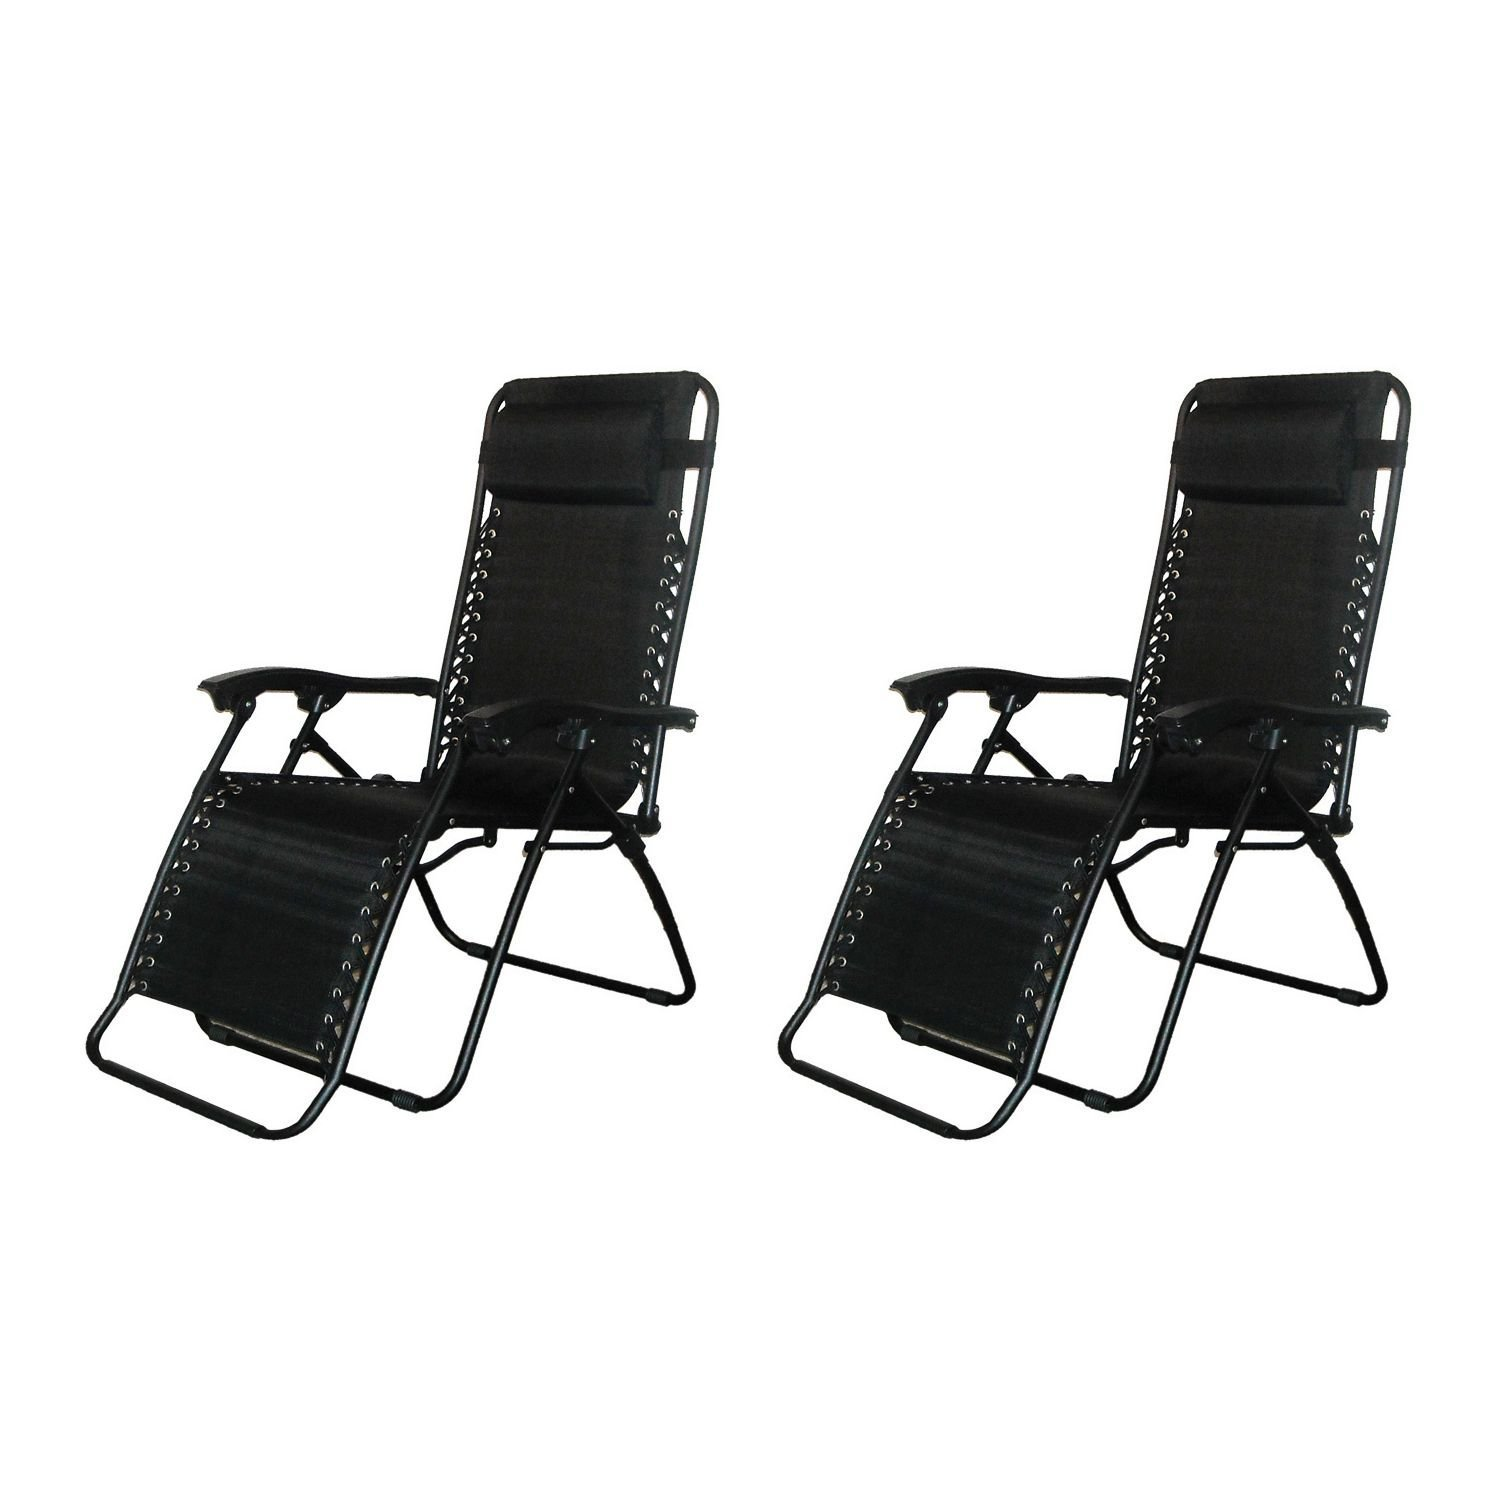 amazon com infinity zero gravity chair black 2 pack kitchen